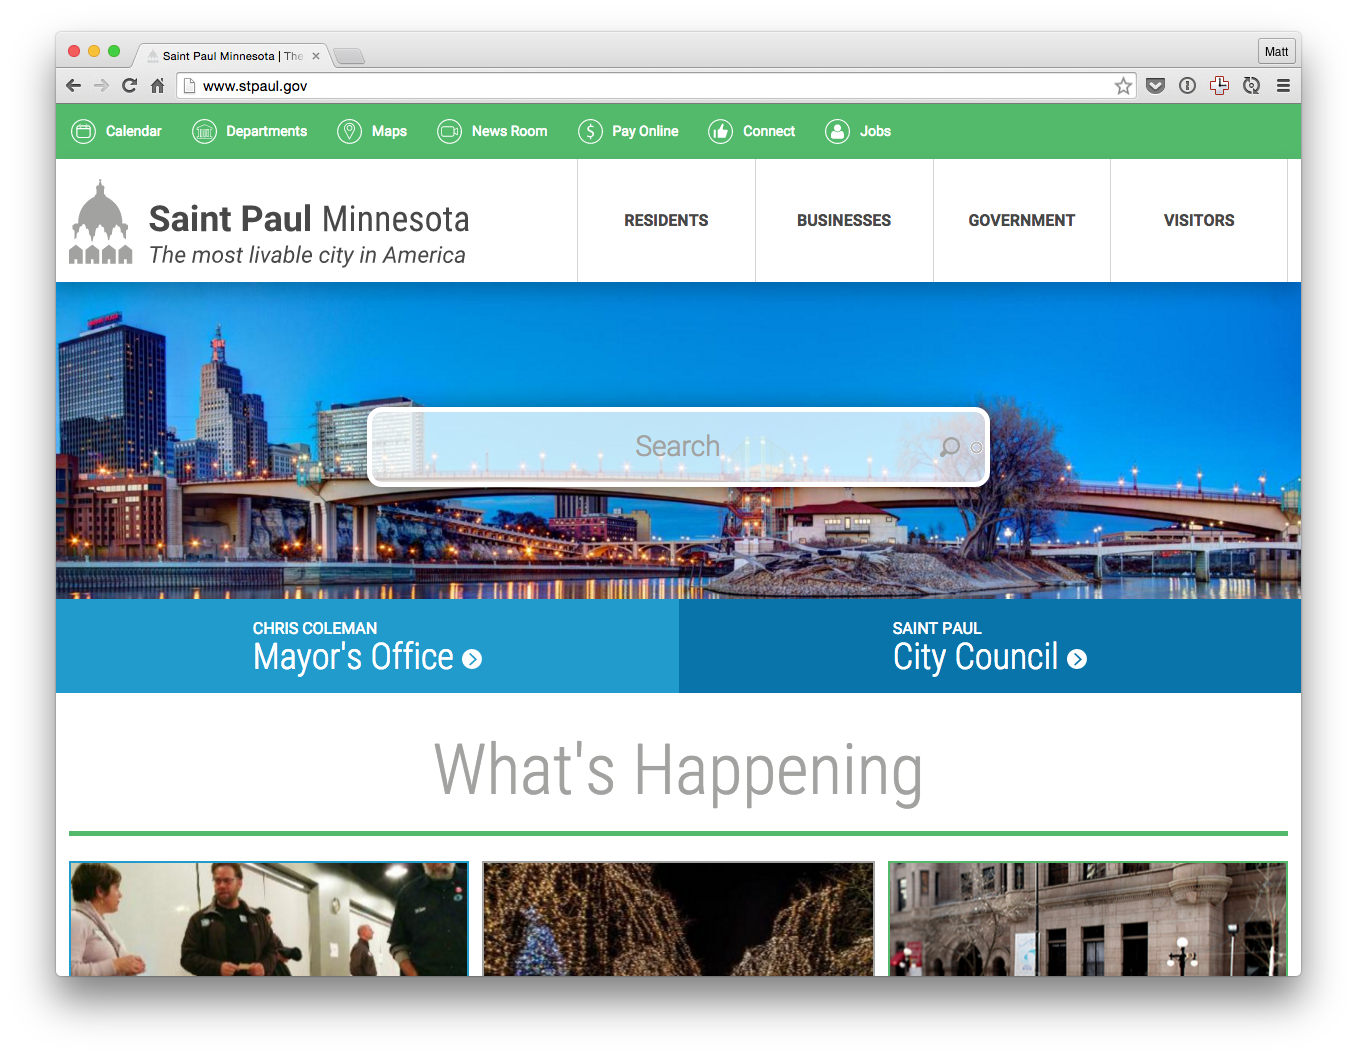 The new redesigned website for the City of Saint Paul